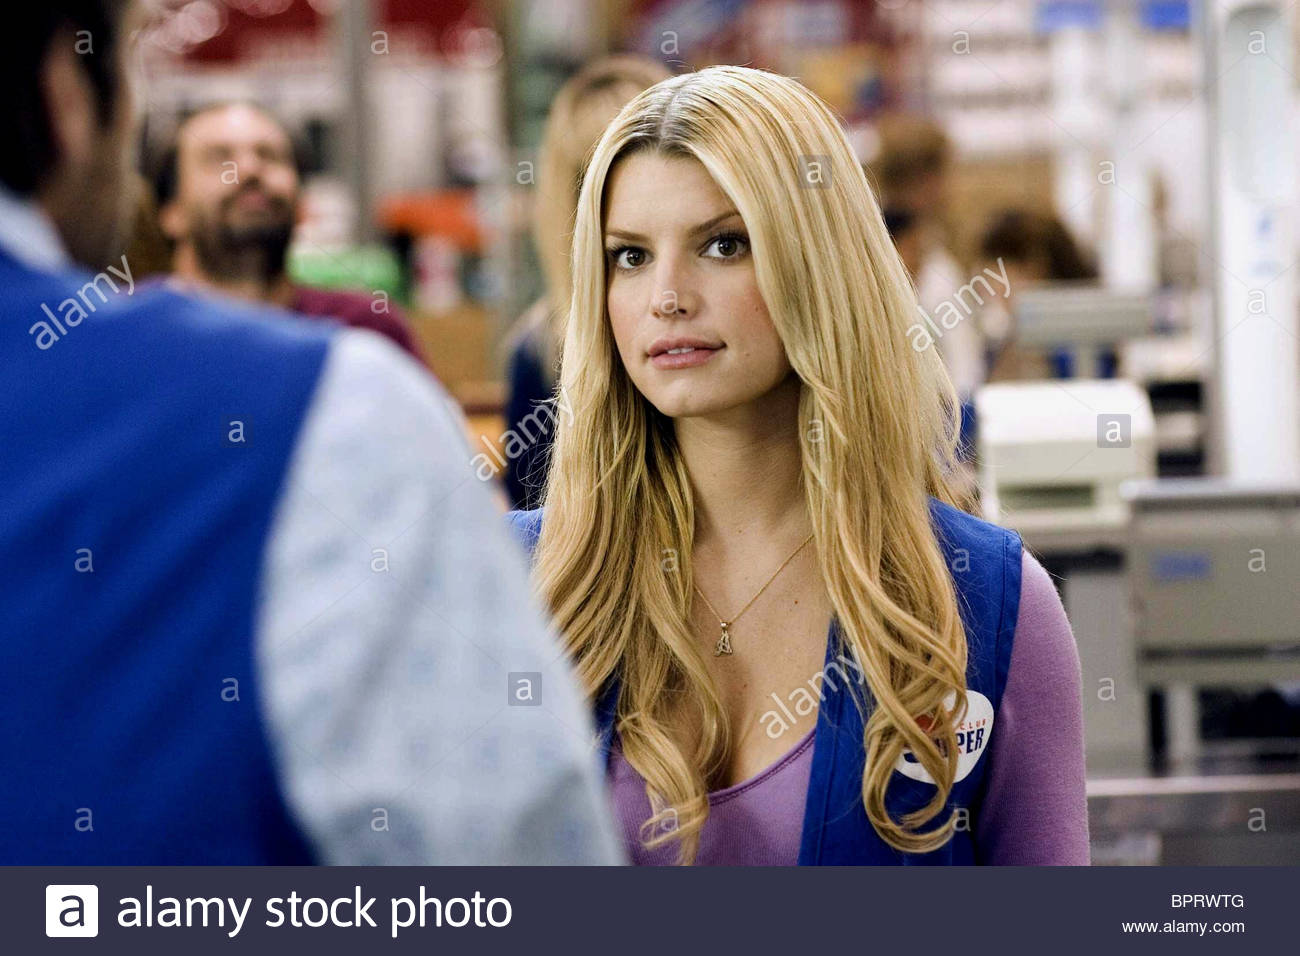 jessica simpson employee of the month 2006 stock photo 31257984